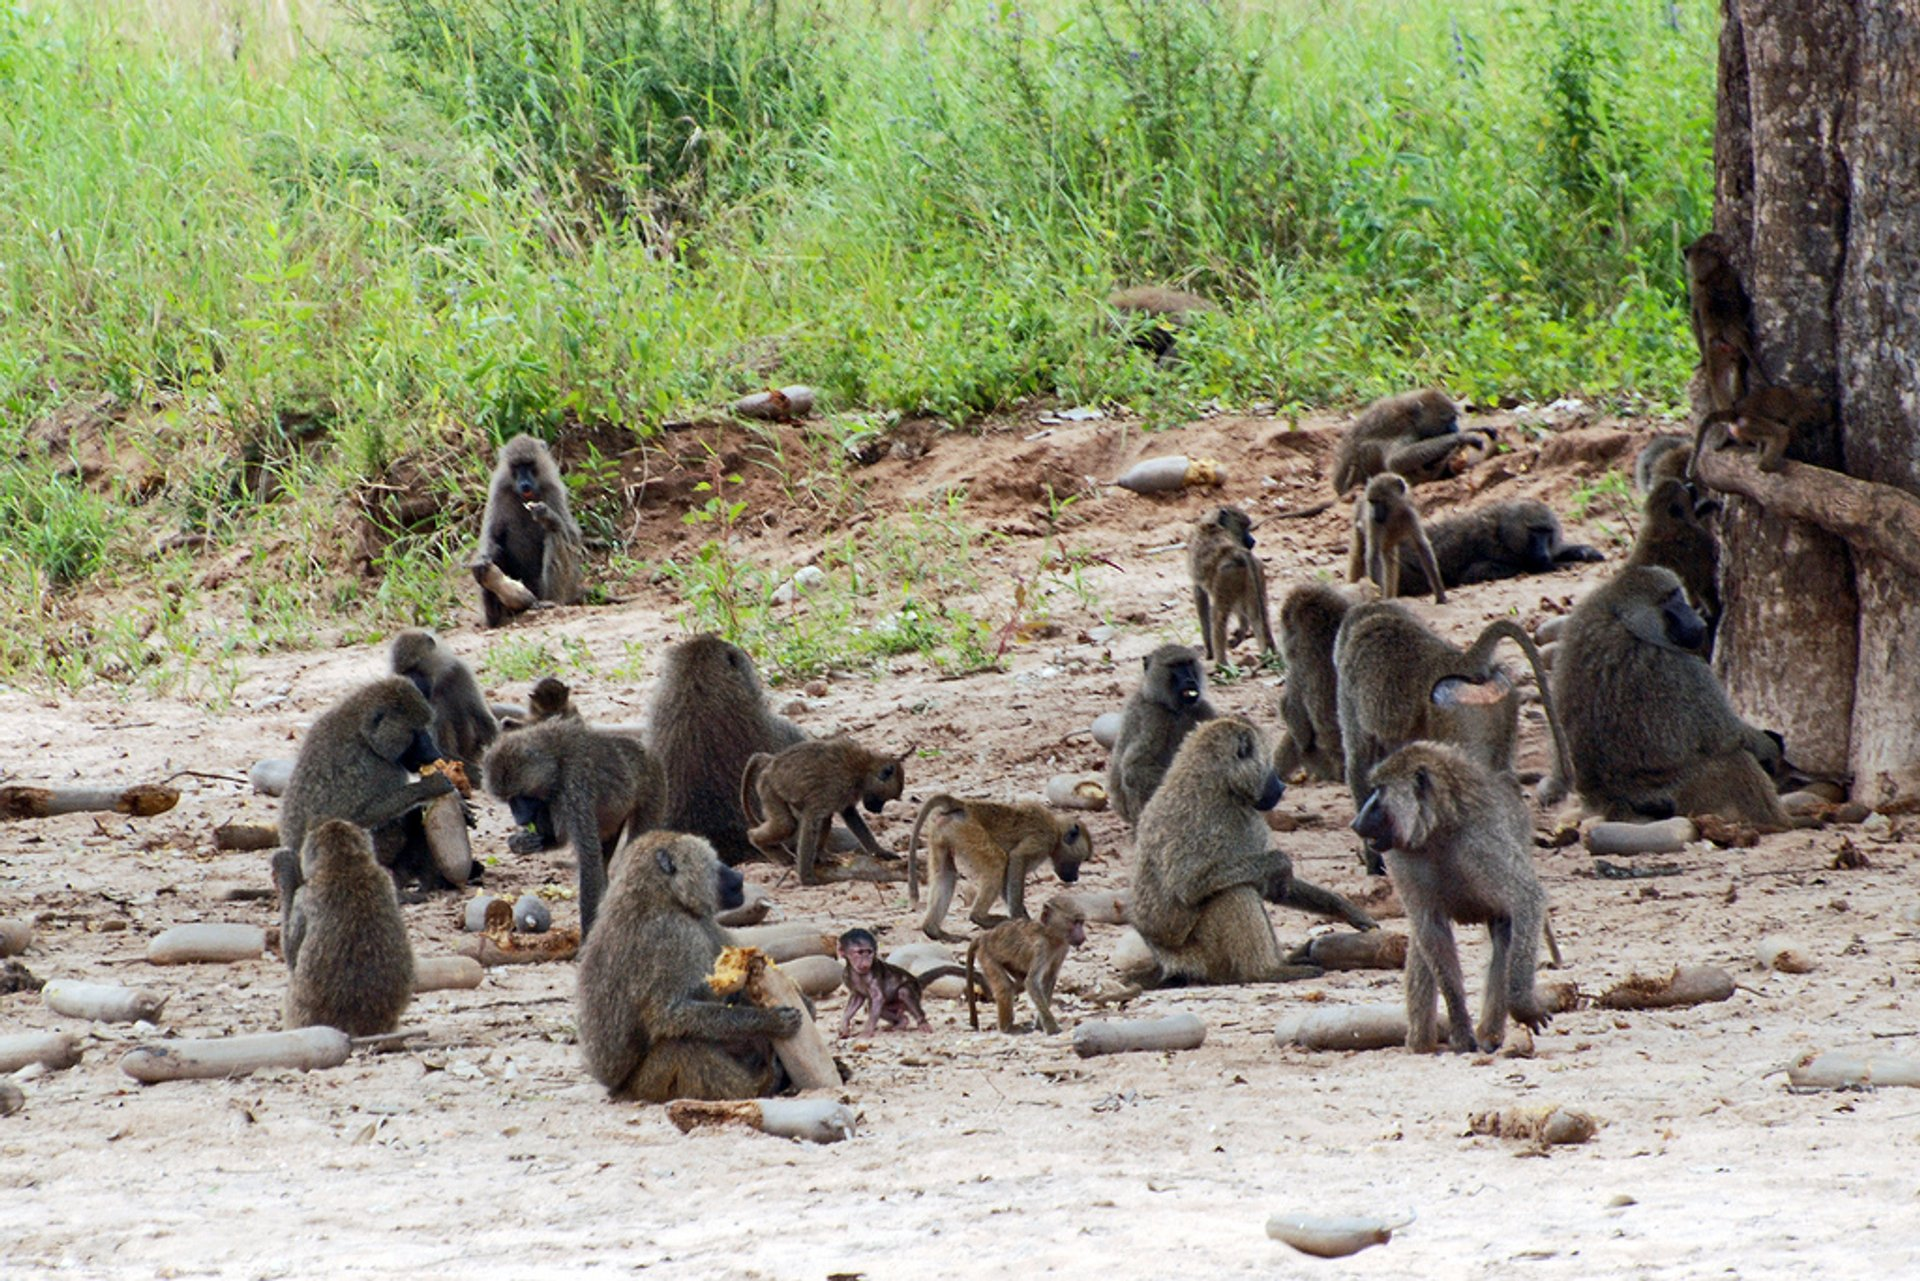 A troop of Olive Baboons